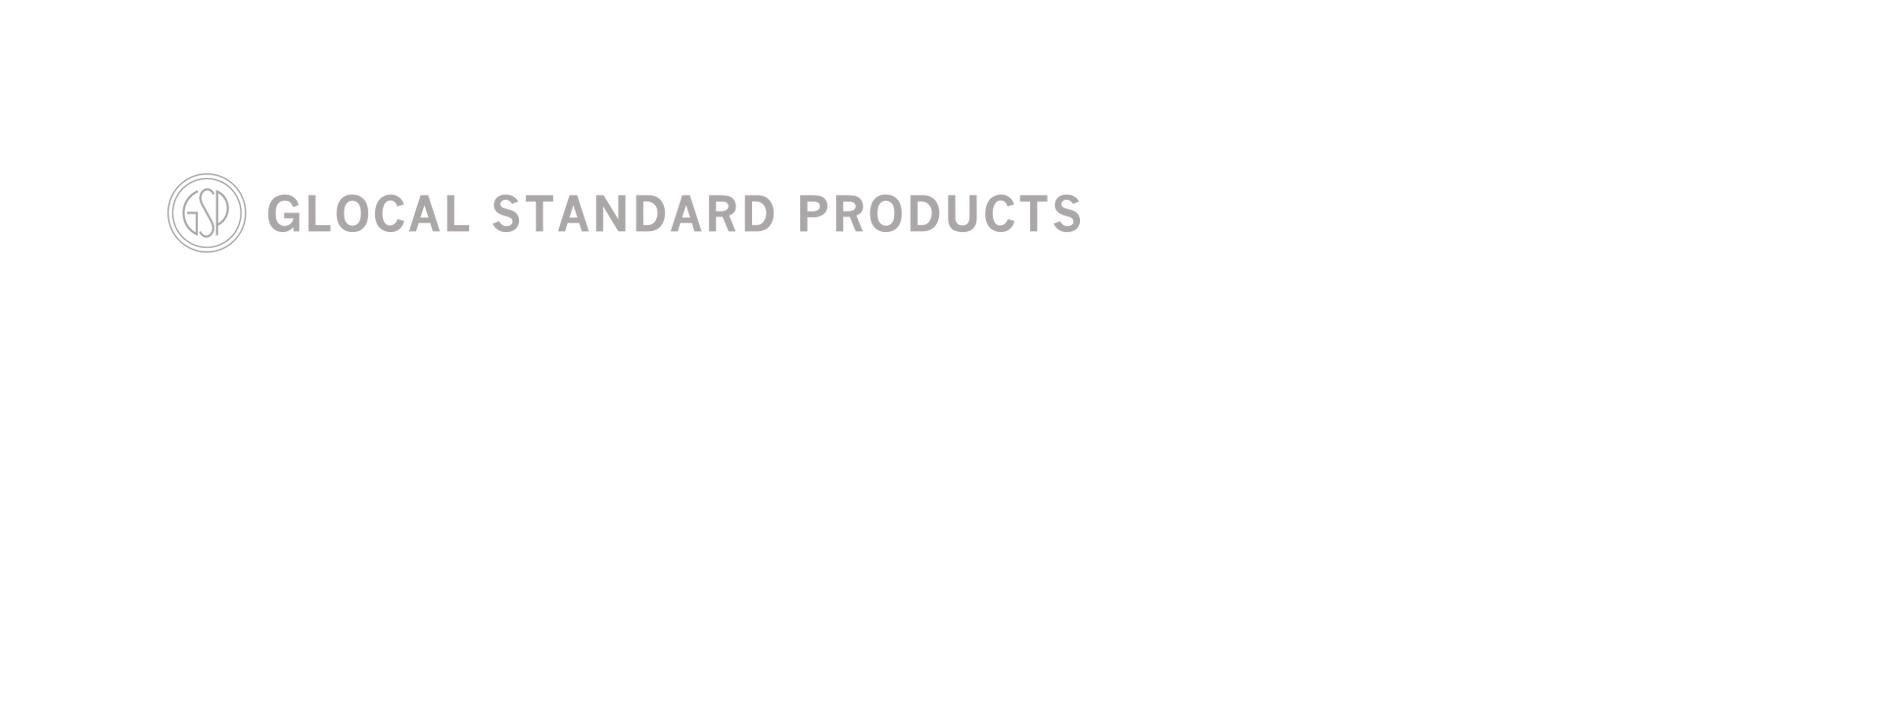 GLOCAL STANDARD PRODUCTS